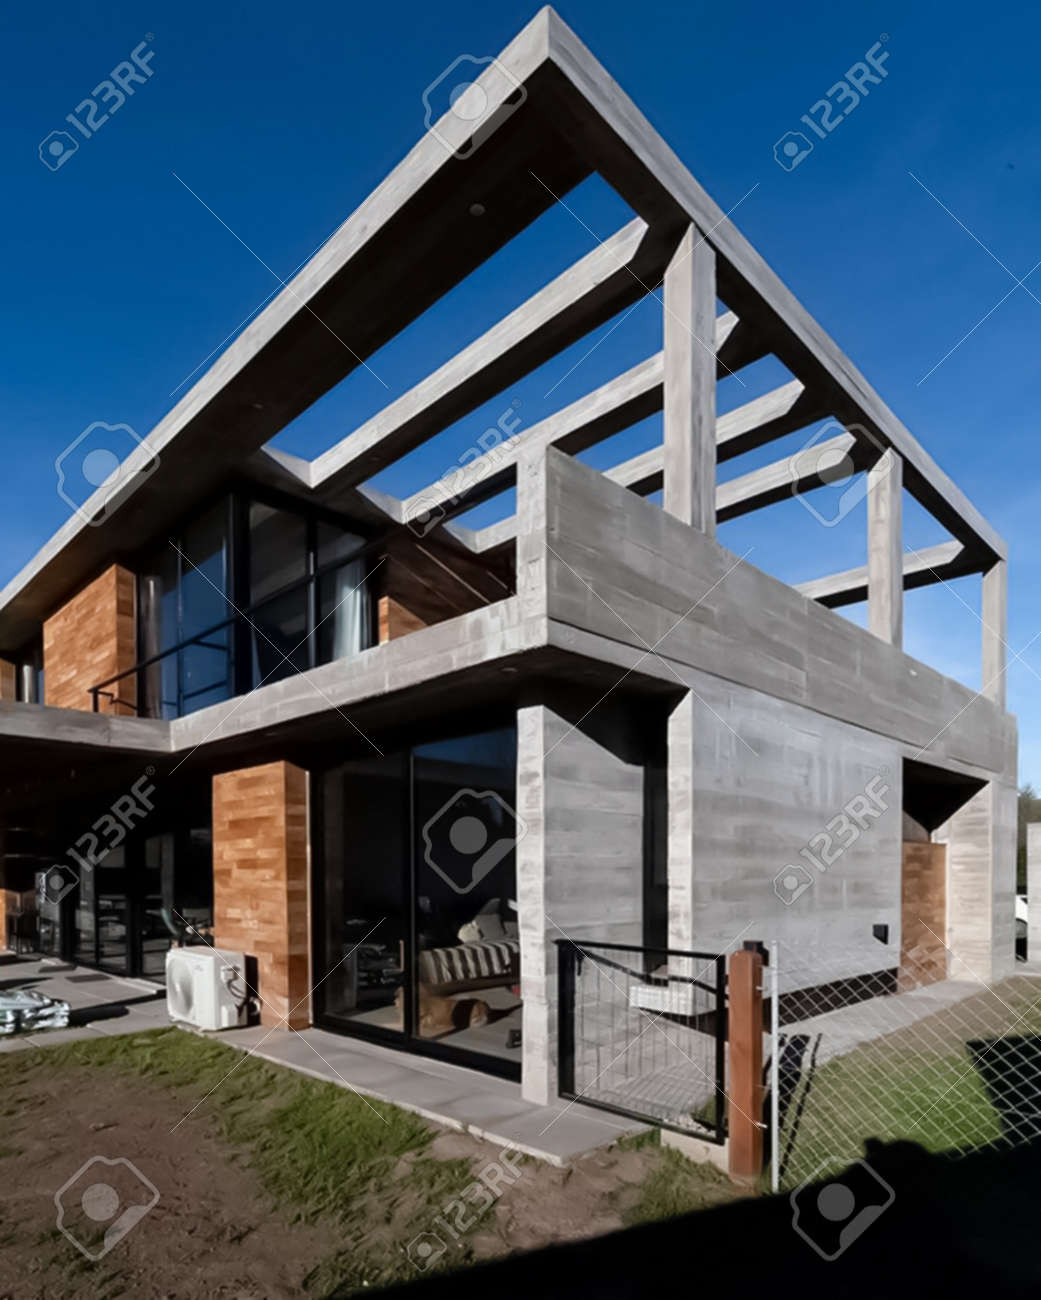 Wooden Modern Architect Design Photo Have Shallow Depth Of Field Selective Focus Blur And Architectural Design Photo Blue Print For Architectural Engineer Contains Luxurious Building Apartment Modern Multistorey Architect Photo Green Picture